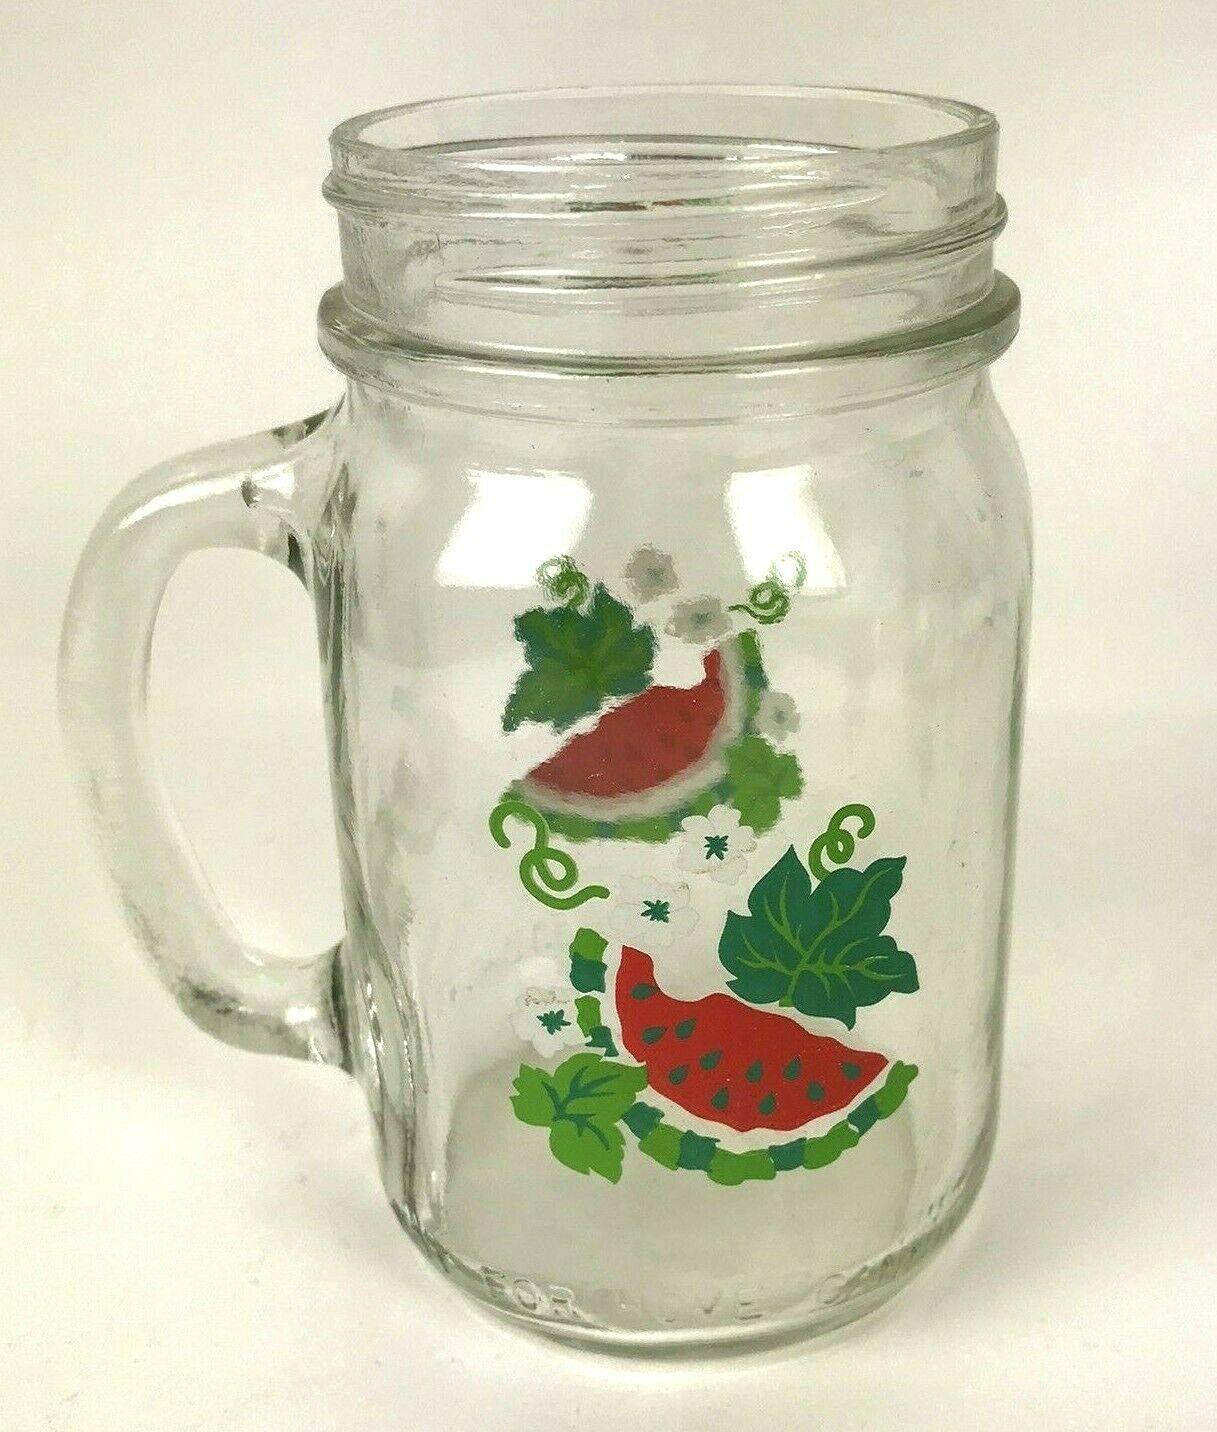 Primary image for Vtg Anchor Hocking Glass Golden Harvest Watermelon 16 oz Mason Jar with handle